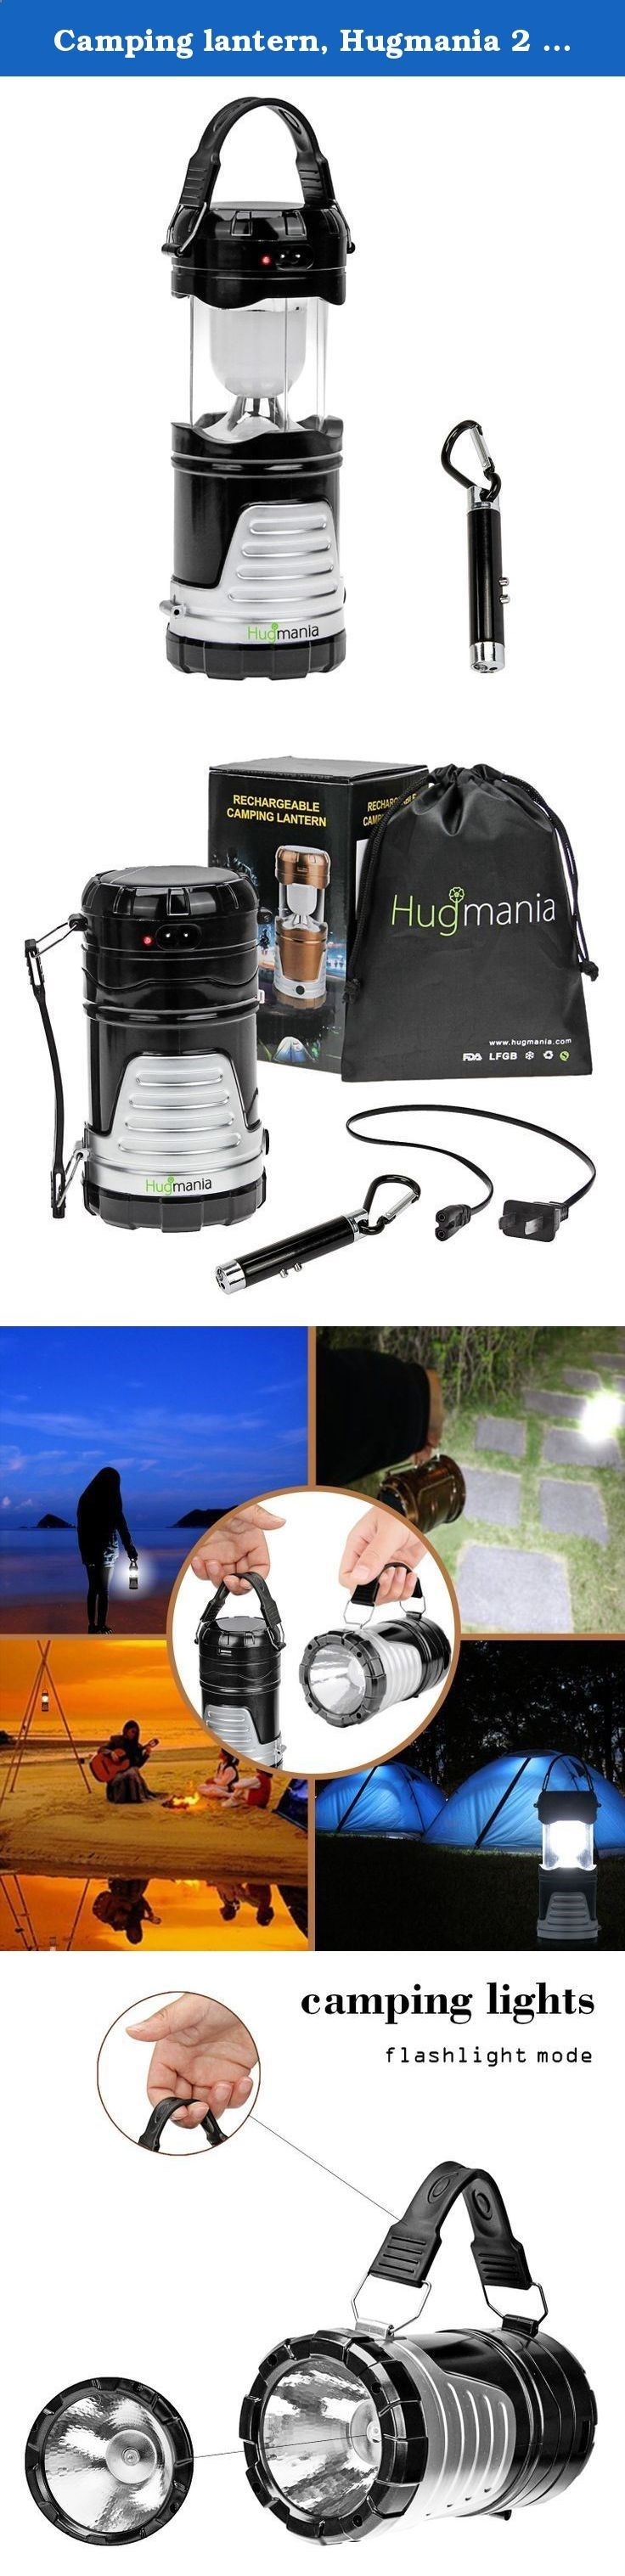 Camping lantern, Hugmania 2 in 1 Ultra Bright Solar Rechargeble LED Camp Light and Handheld Flashlight Emergency USB Charging, Free Bonus Mini Torch (Black). Hugmania 2 in 1 Ultra Bright Solar Rechargeble LED Camping Lantern and Handheld Flashlight This Camping Light is Collapses, Super Bright, LightWeight, Water Resistant, Lantern Flashlight are Suitable for: Hiking, Camping, Emergencies, Hurricanes, Outages. It features 6 energy saving LED bulbs, yielding 360° of high-intensity...